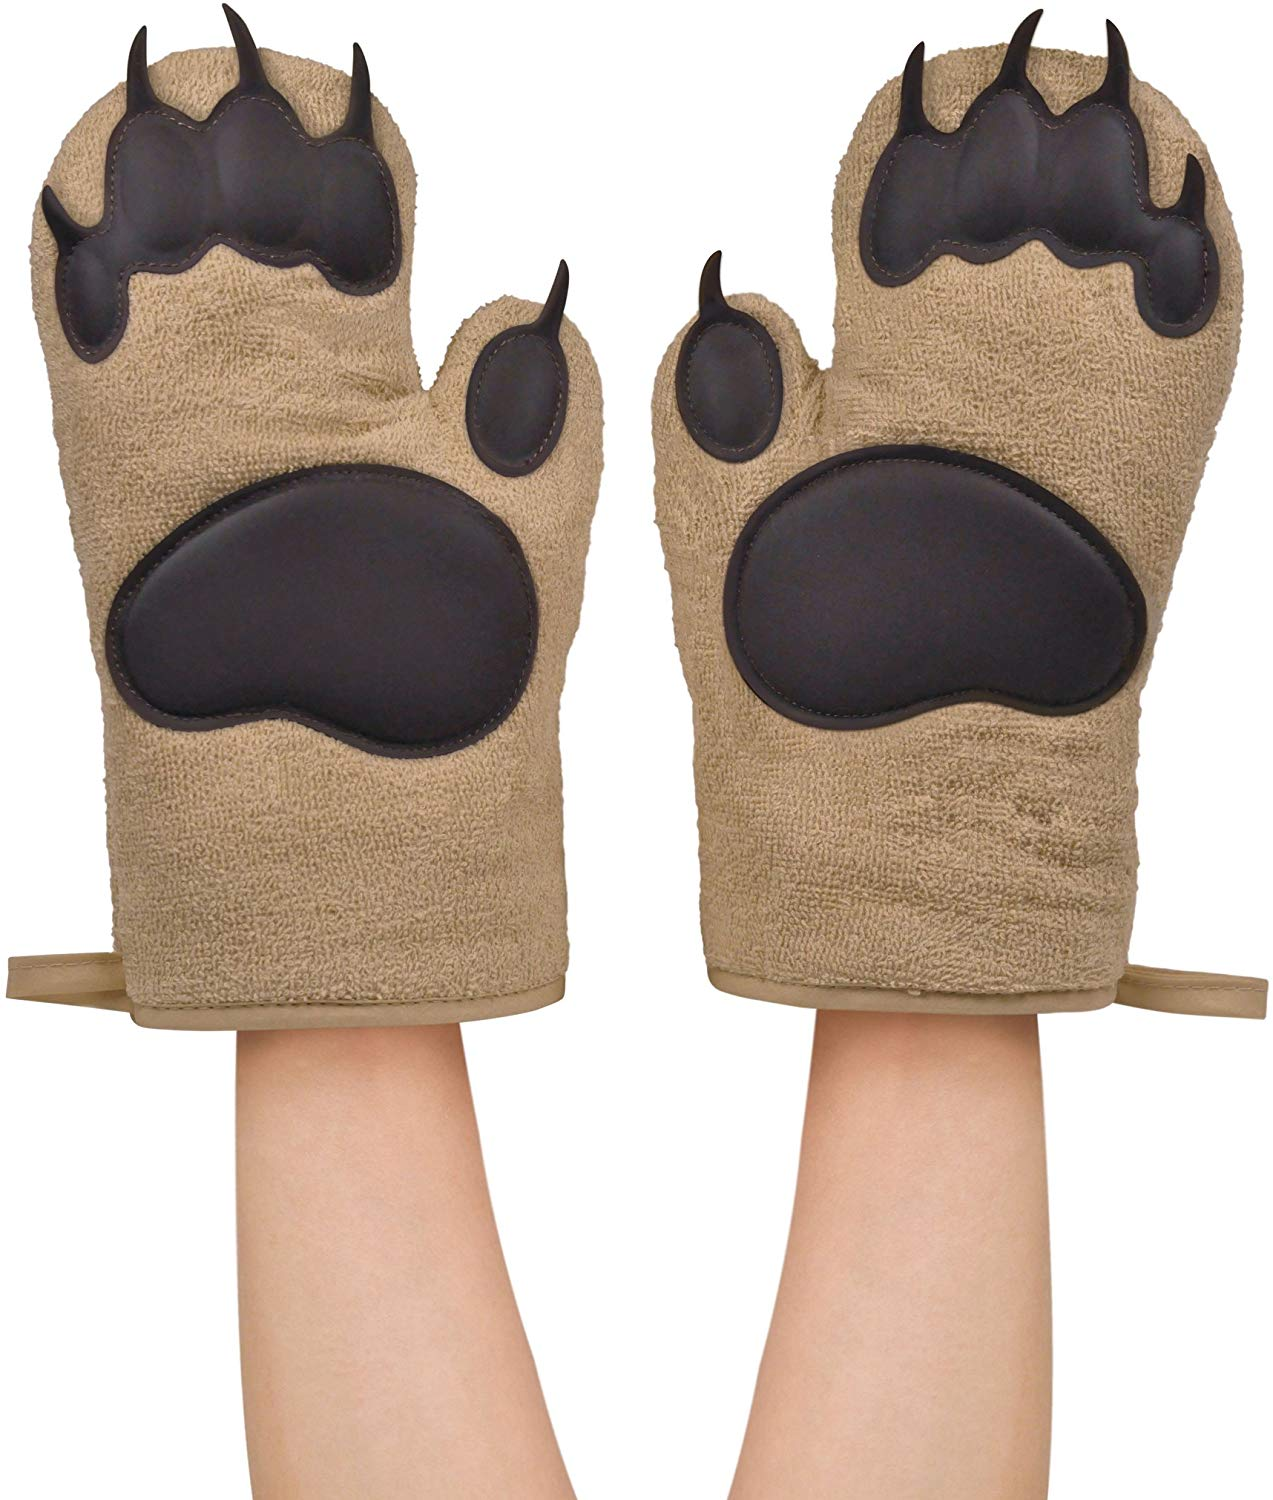 Fred & Friends 5130360 Oven Mitts Bear, Hands